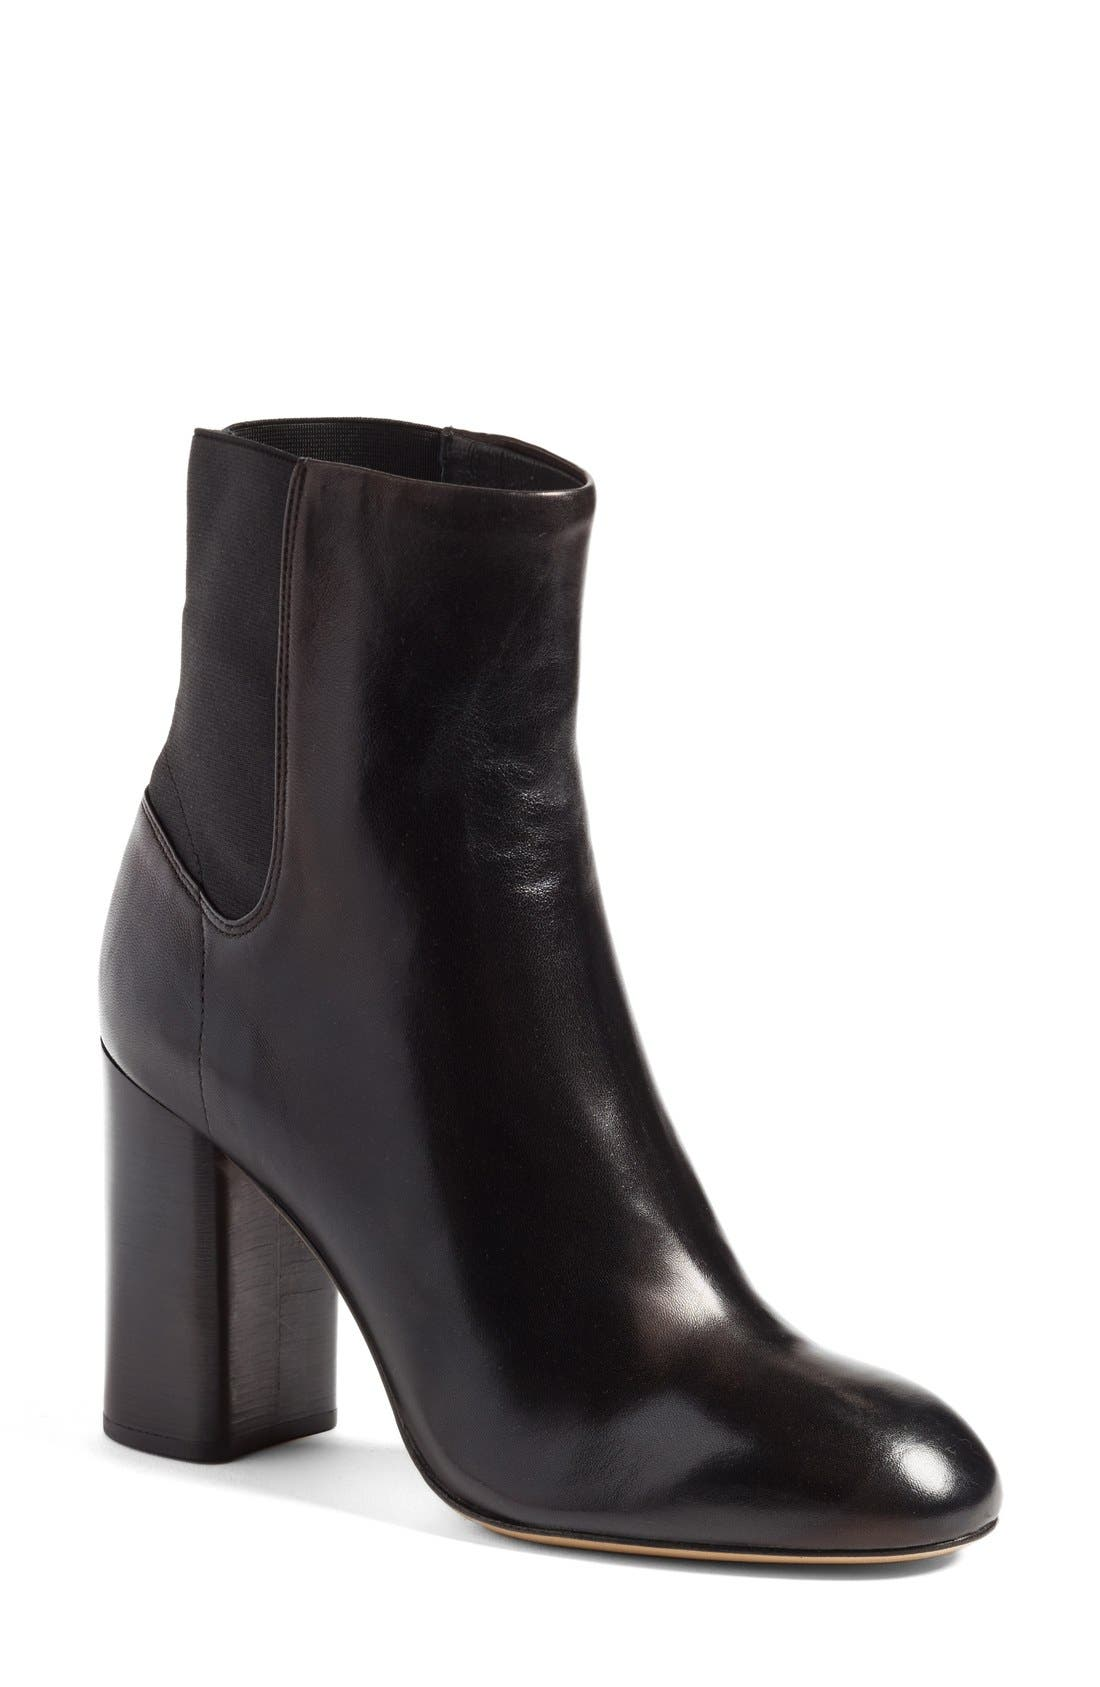 Alternate Image 1 Selected - rag & bone Agnes Bootie (Women)